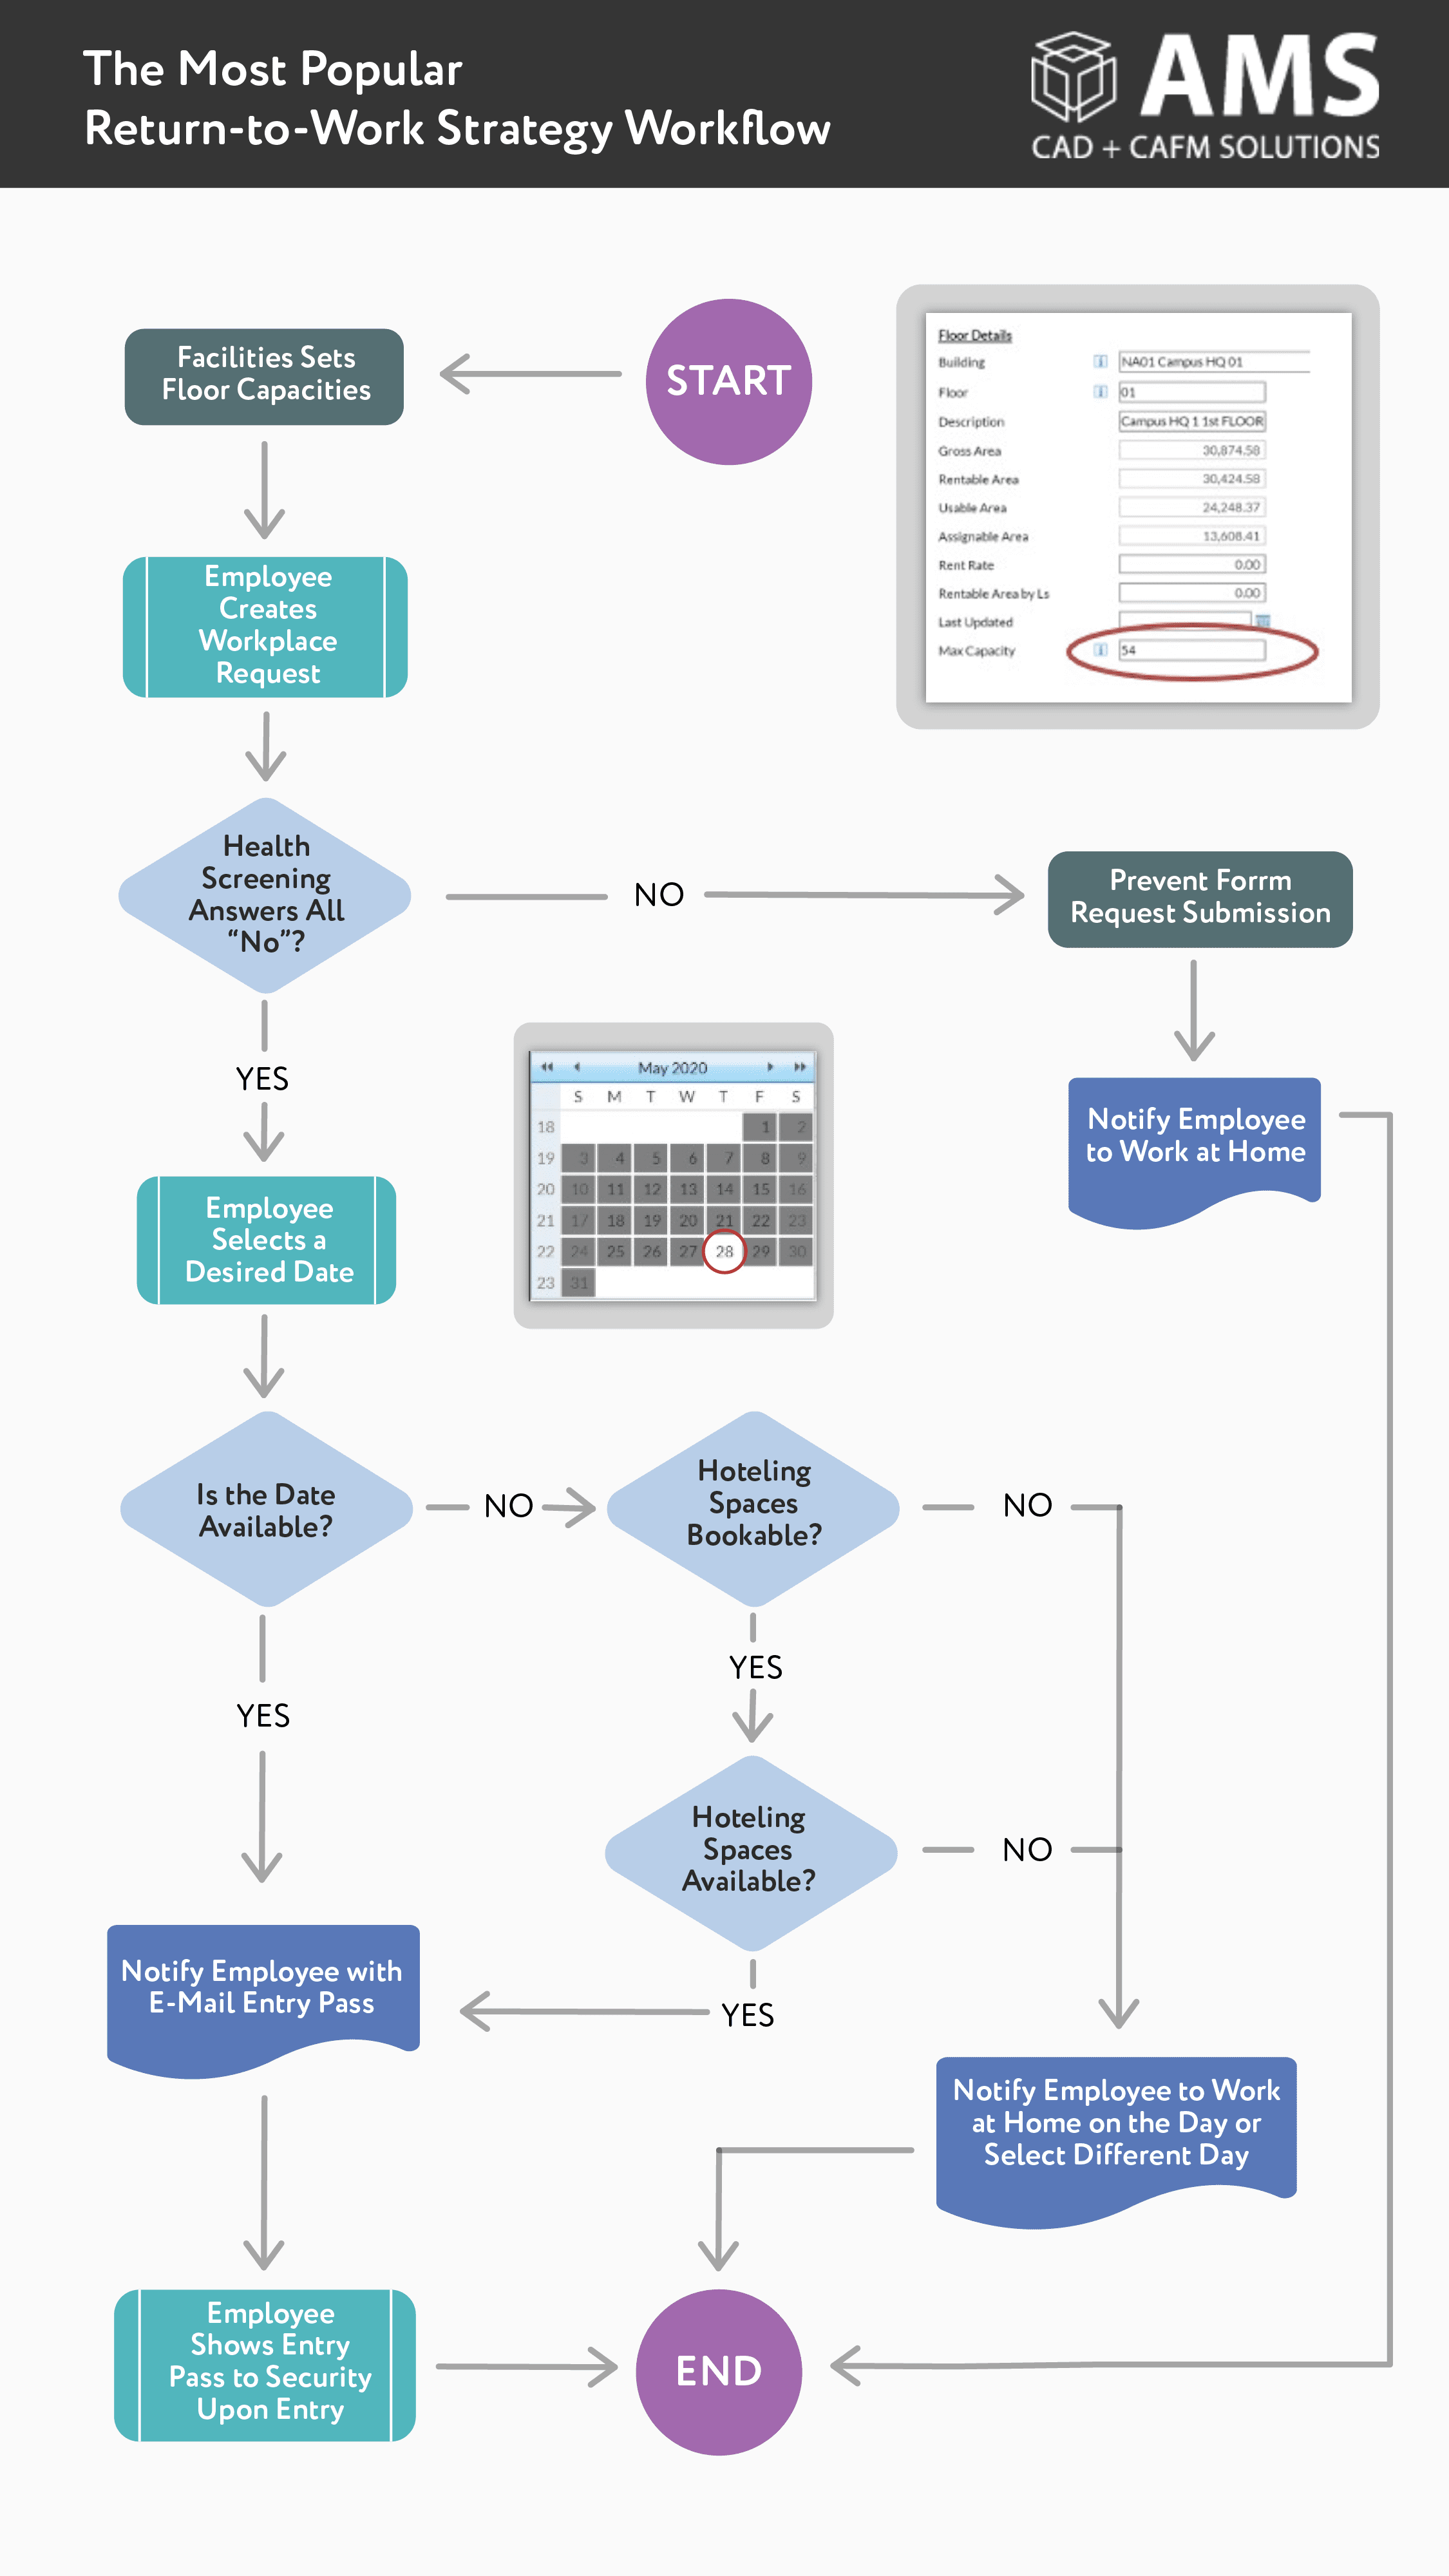 workflow3 01 - The Most Popular Return-to-Work Strategy is Turning into This Workflow